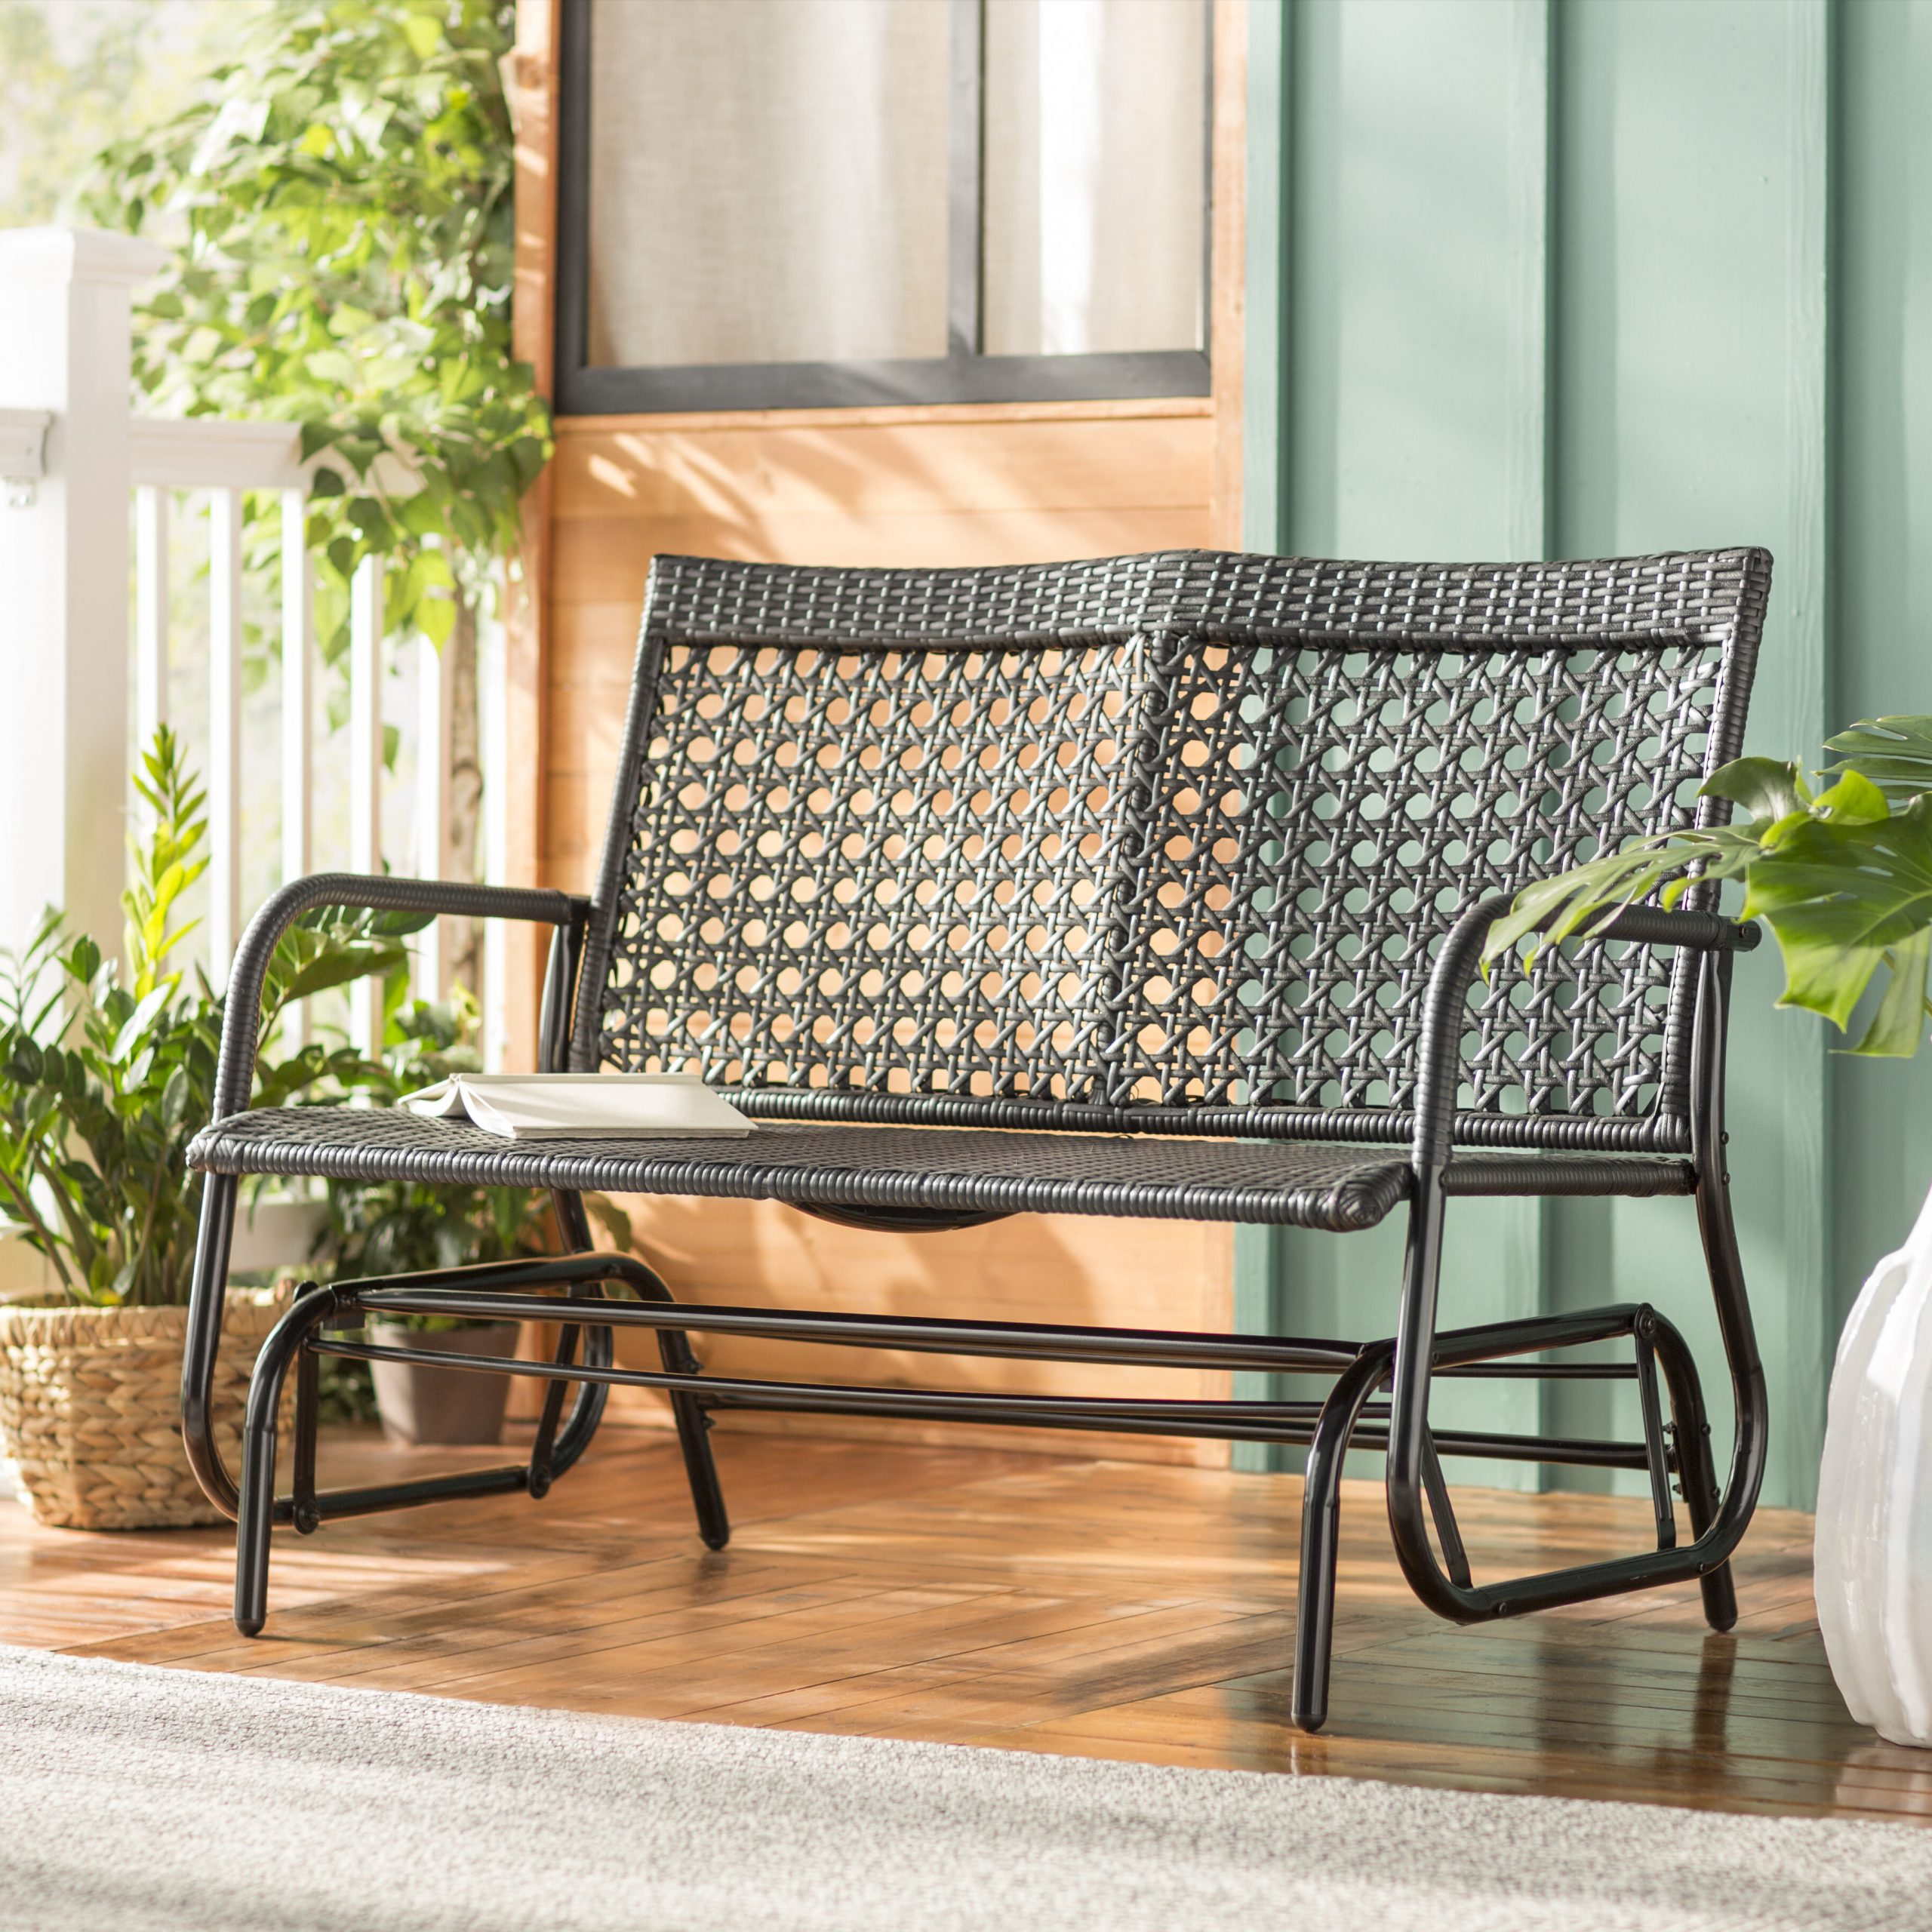 Shupe Steel Rattan Outdoor Patio Double Glider Bench Intended For Steel Patio Swing Glider Benches (View 12 of 25)